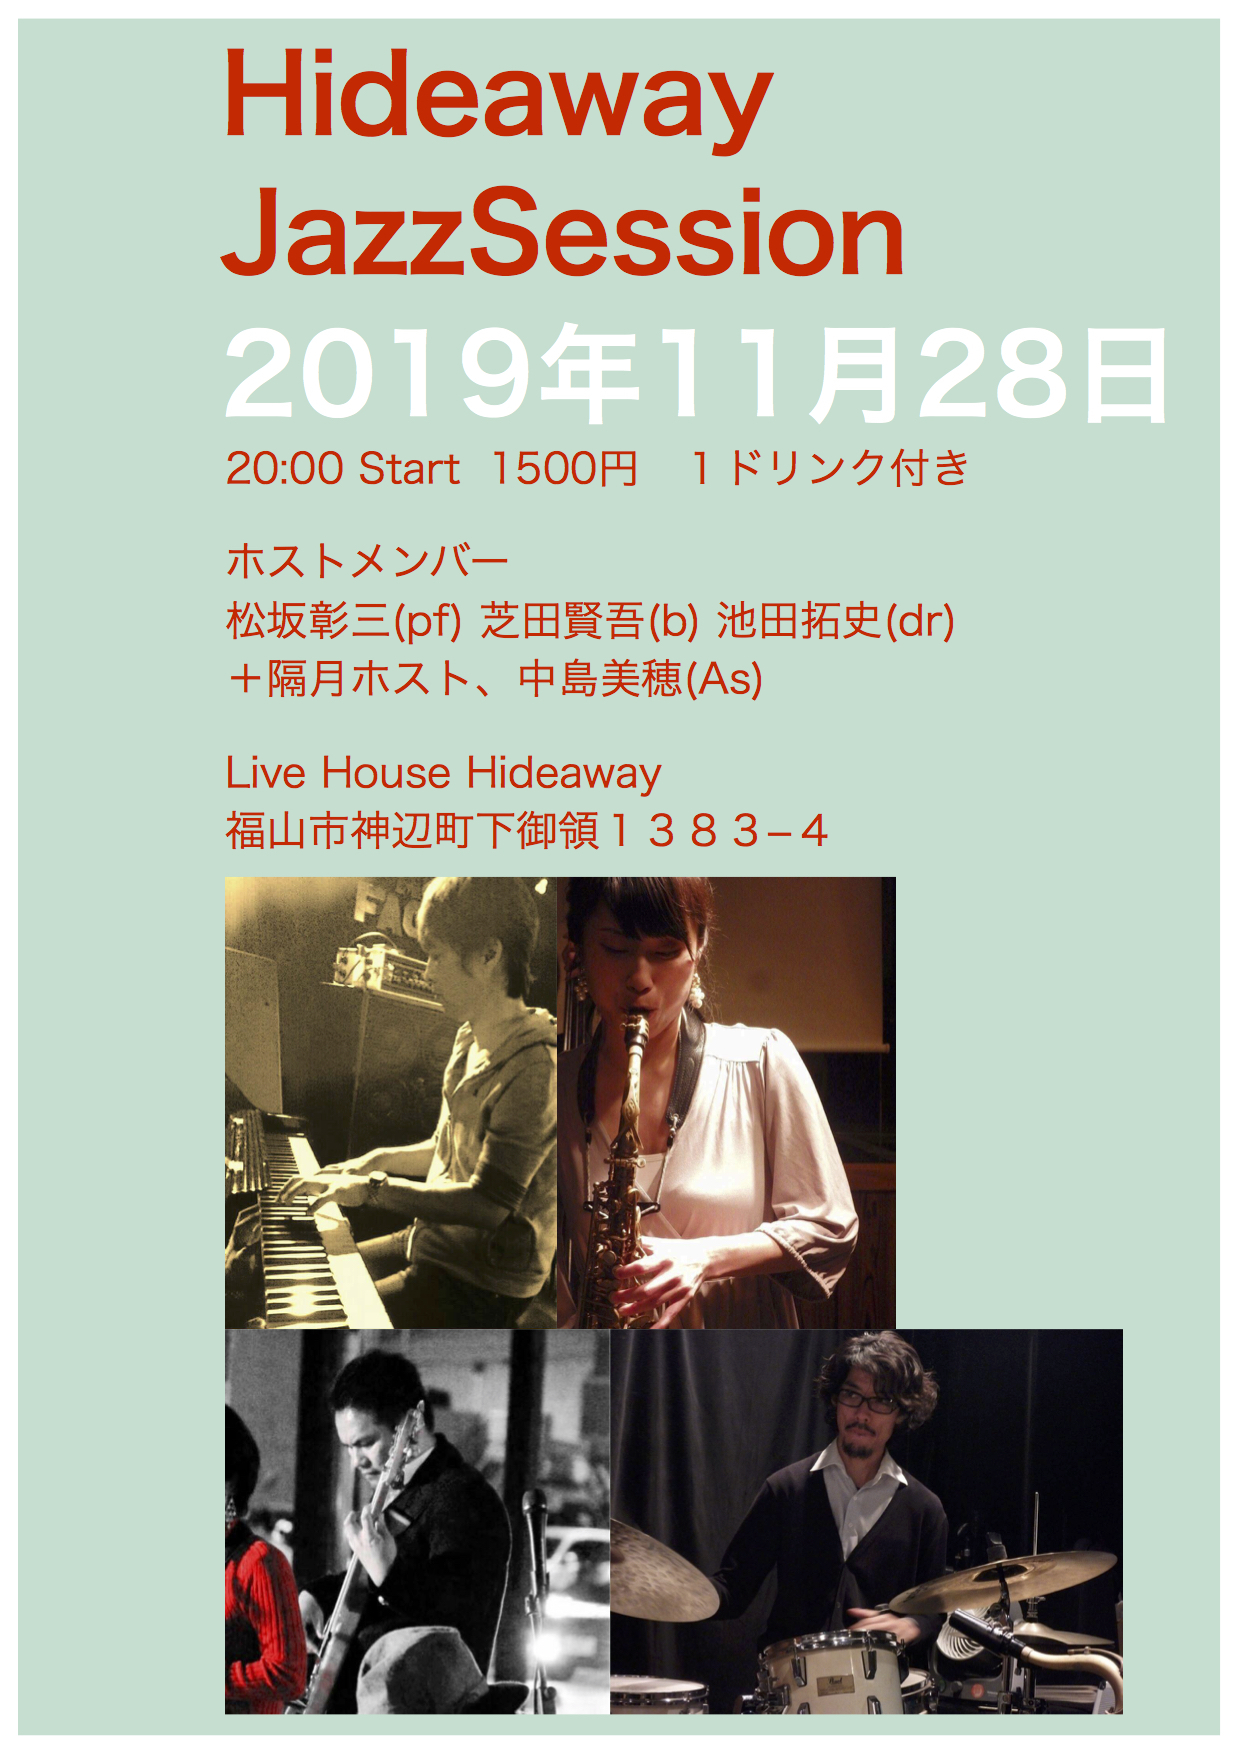 newsession20191128.jpg